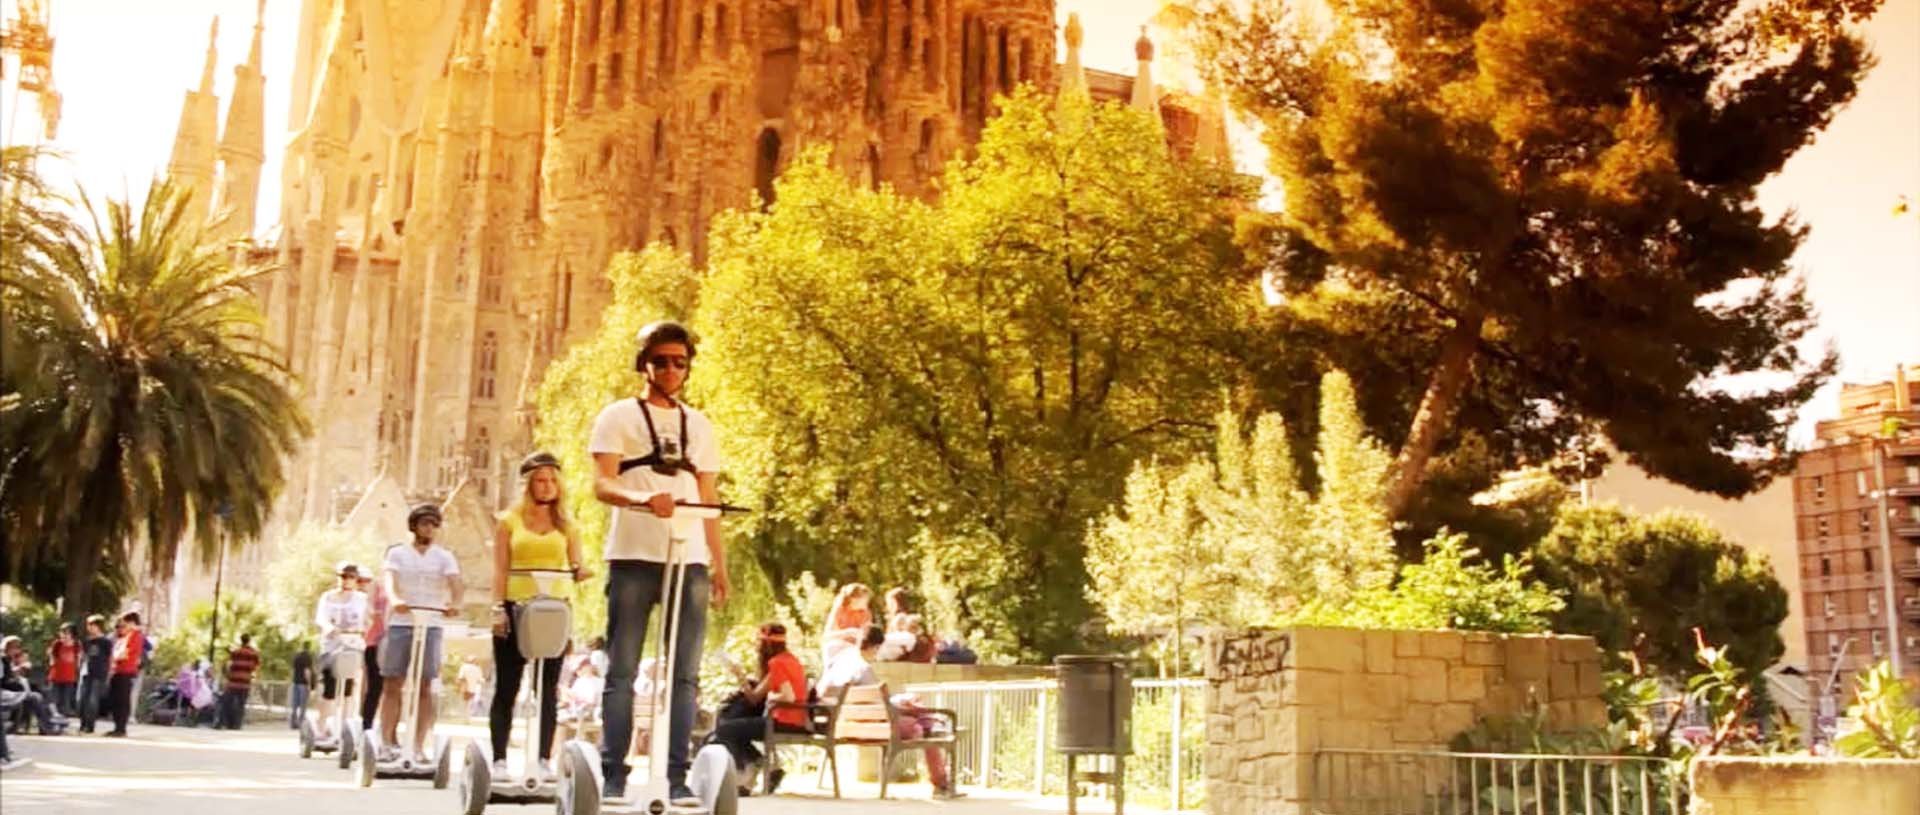 Gaudi segway tour route in Barcelona